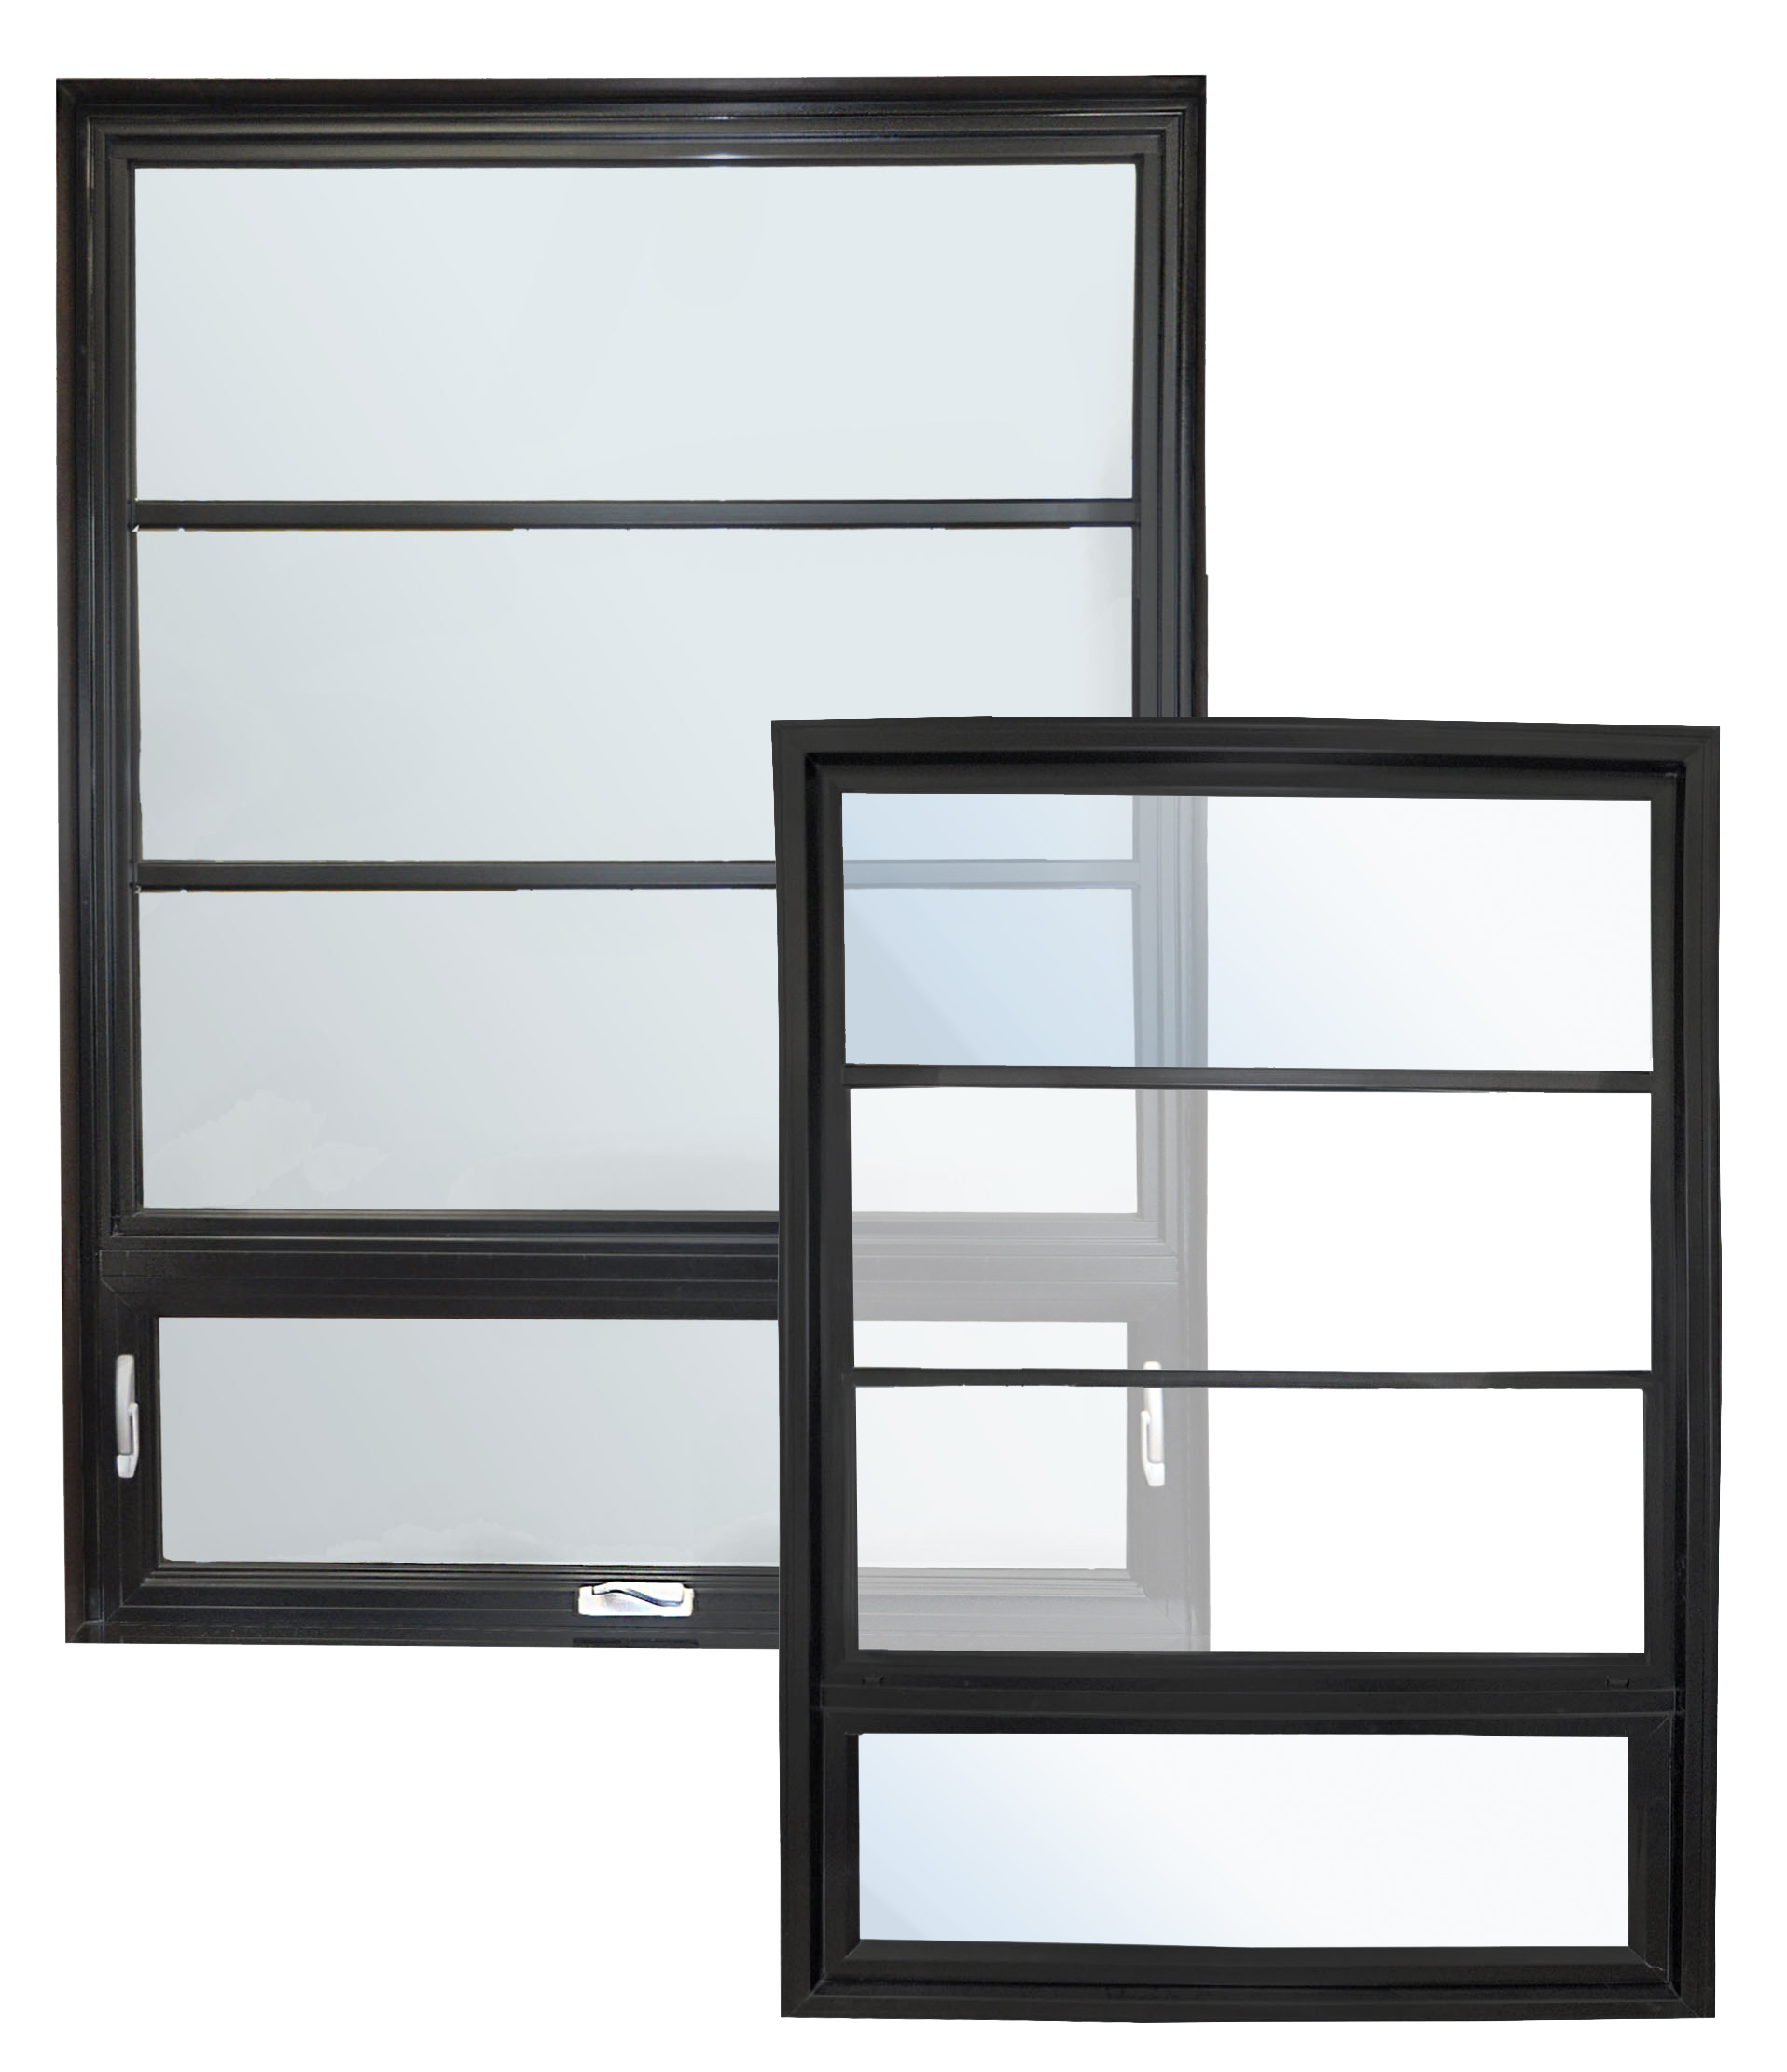 300 series fiberglass awning windows fibertec fiberglass for Fiberglass windows